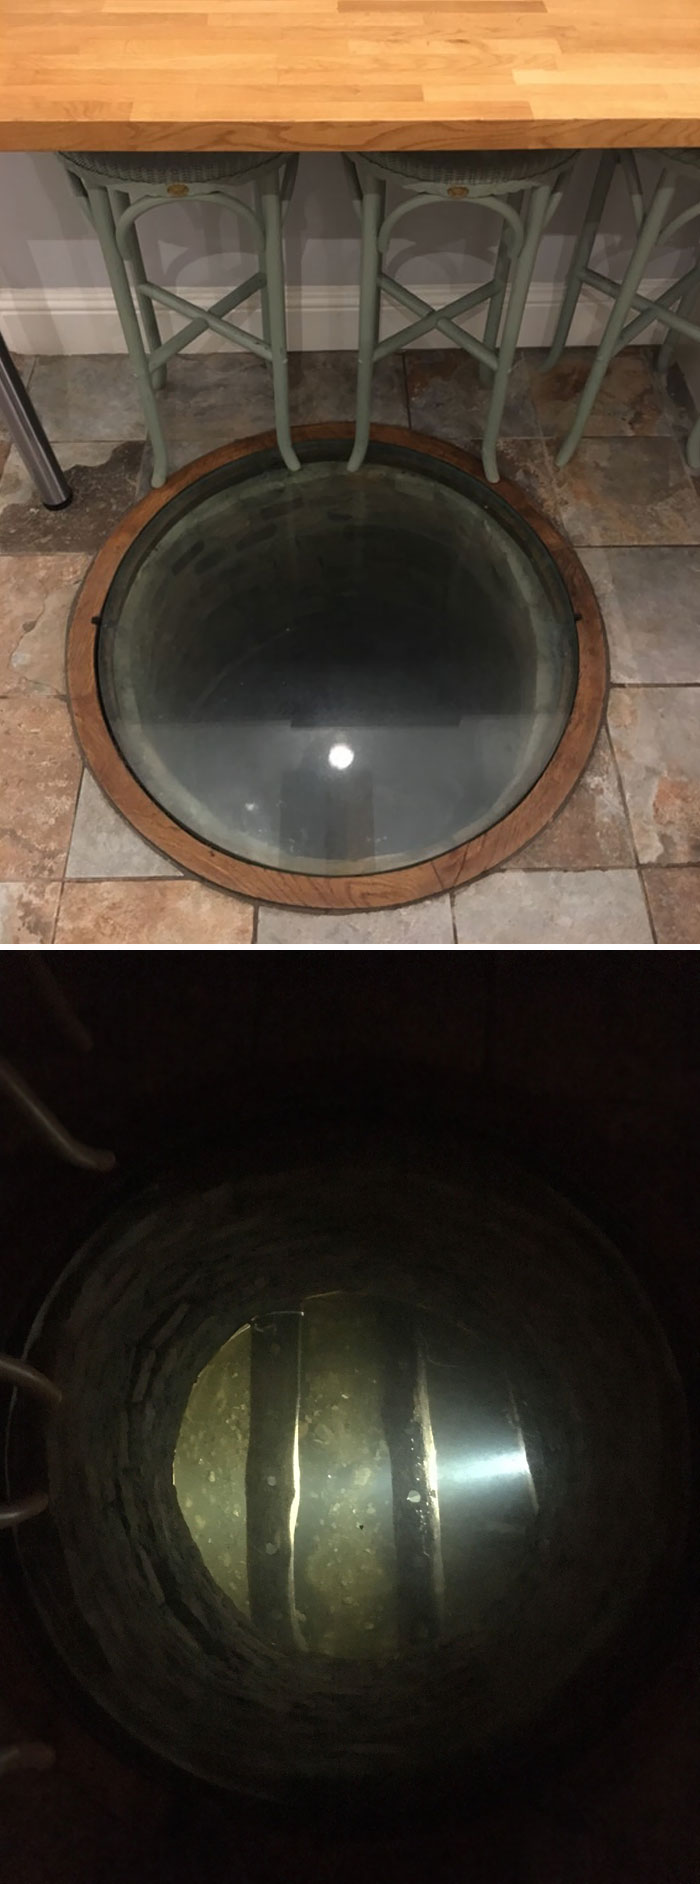 The House I'm Staying In Has Kept Its Original Well As A Feature